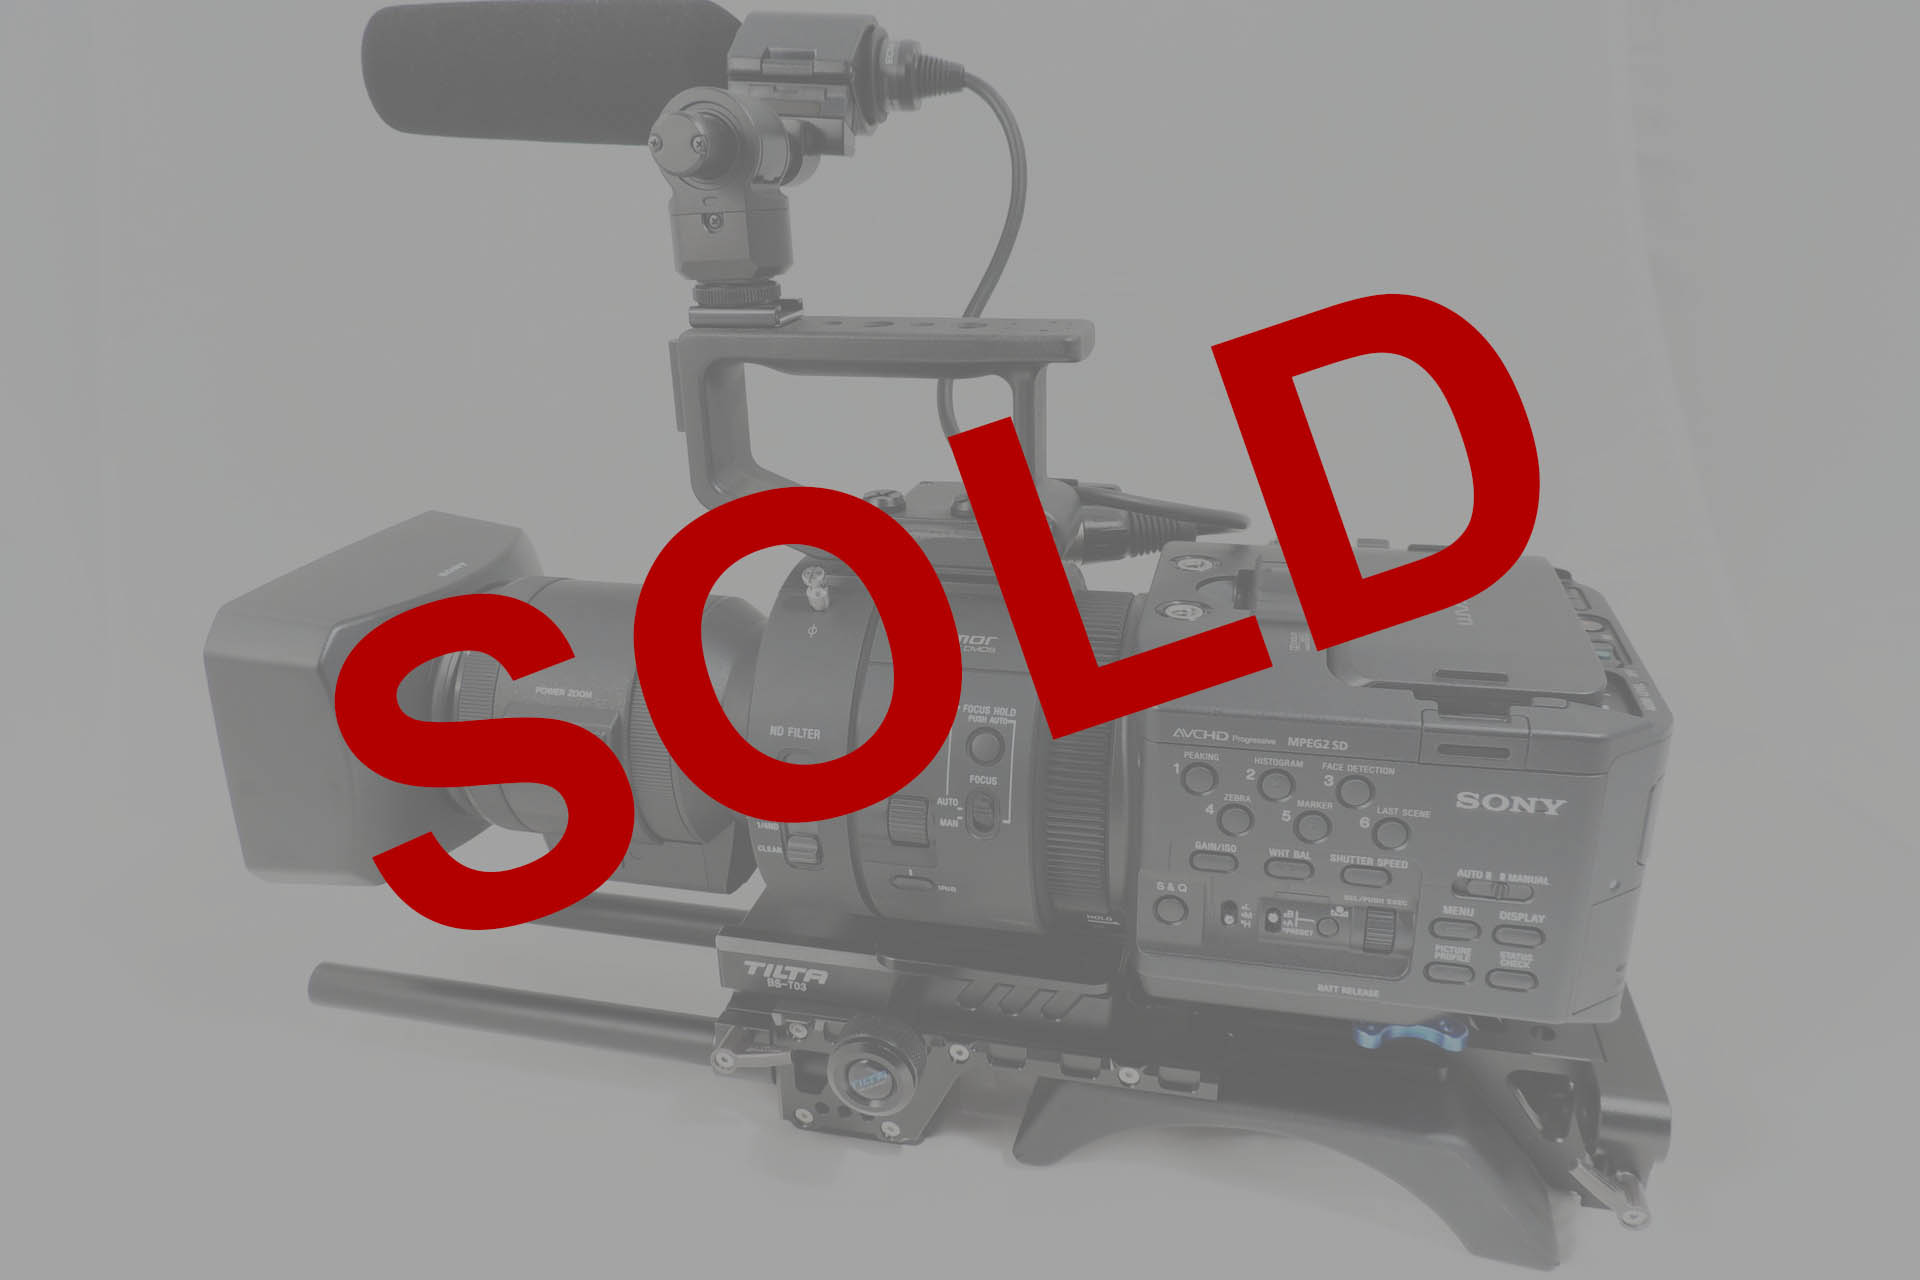 SONY NEX-FS700 MASSIVE BUNDLE WITH LOTS OF ACCESSORIES